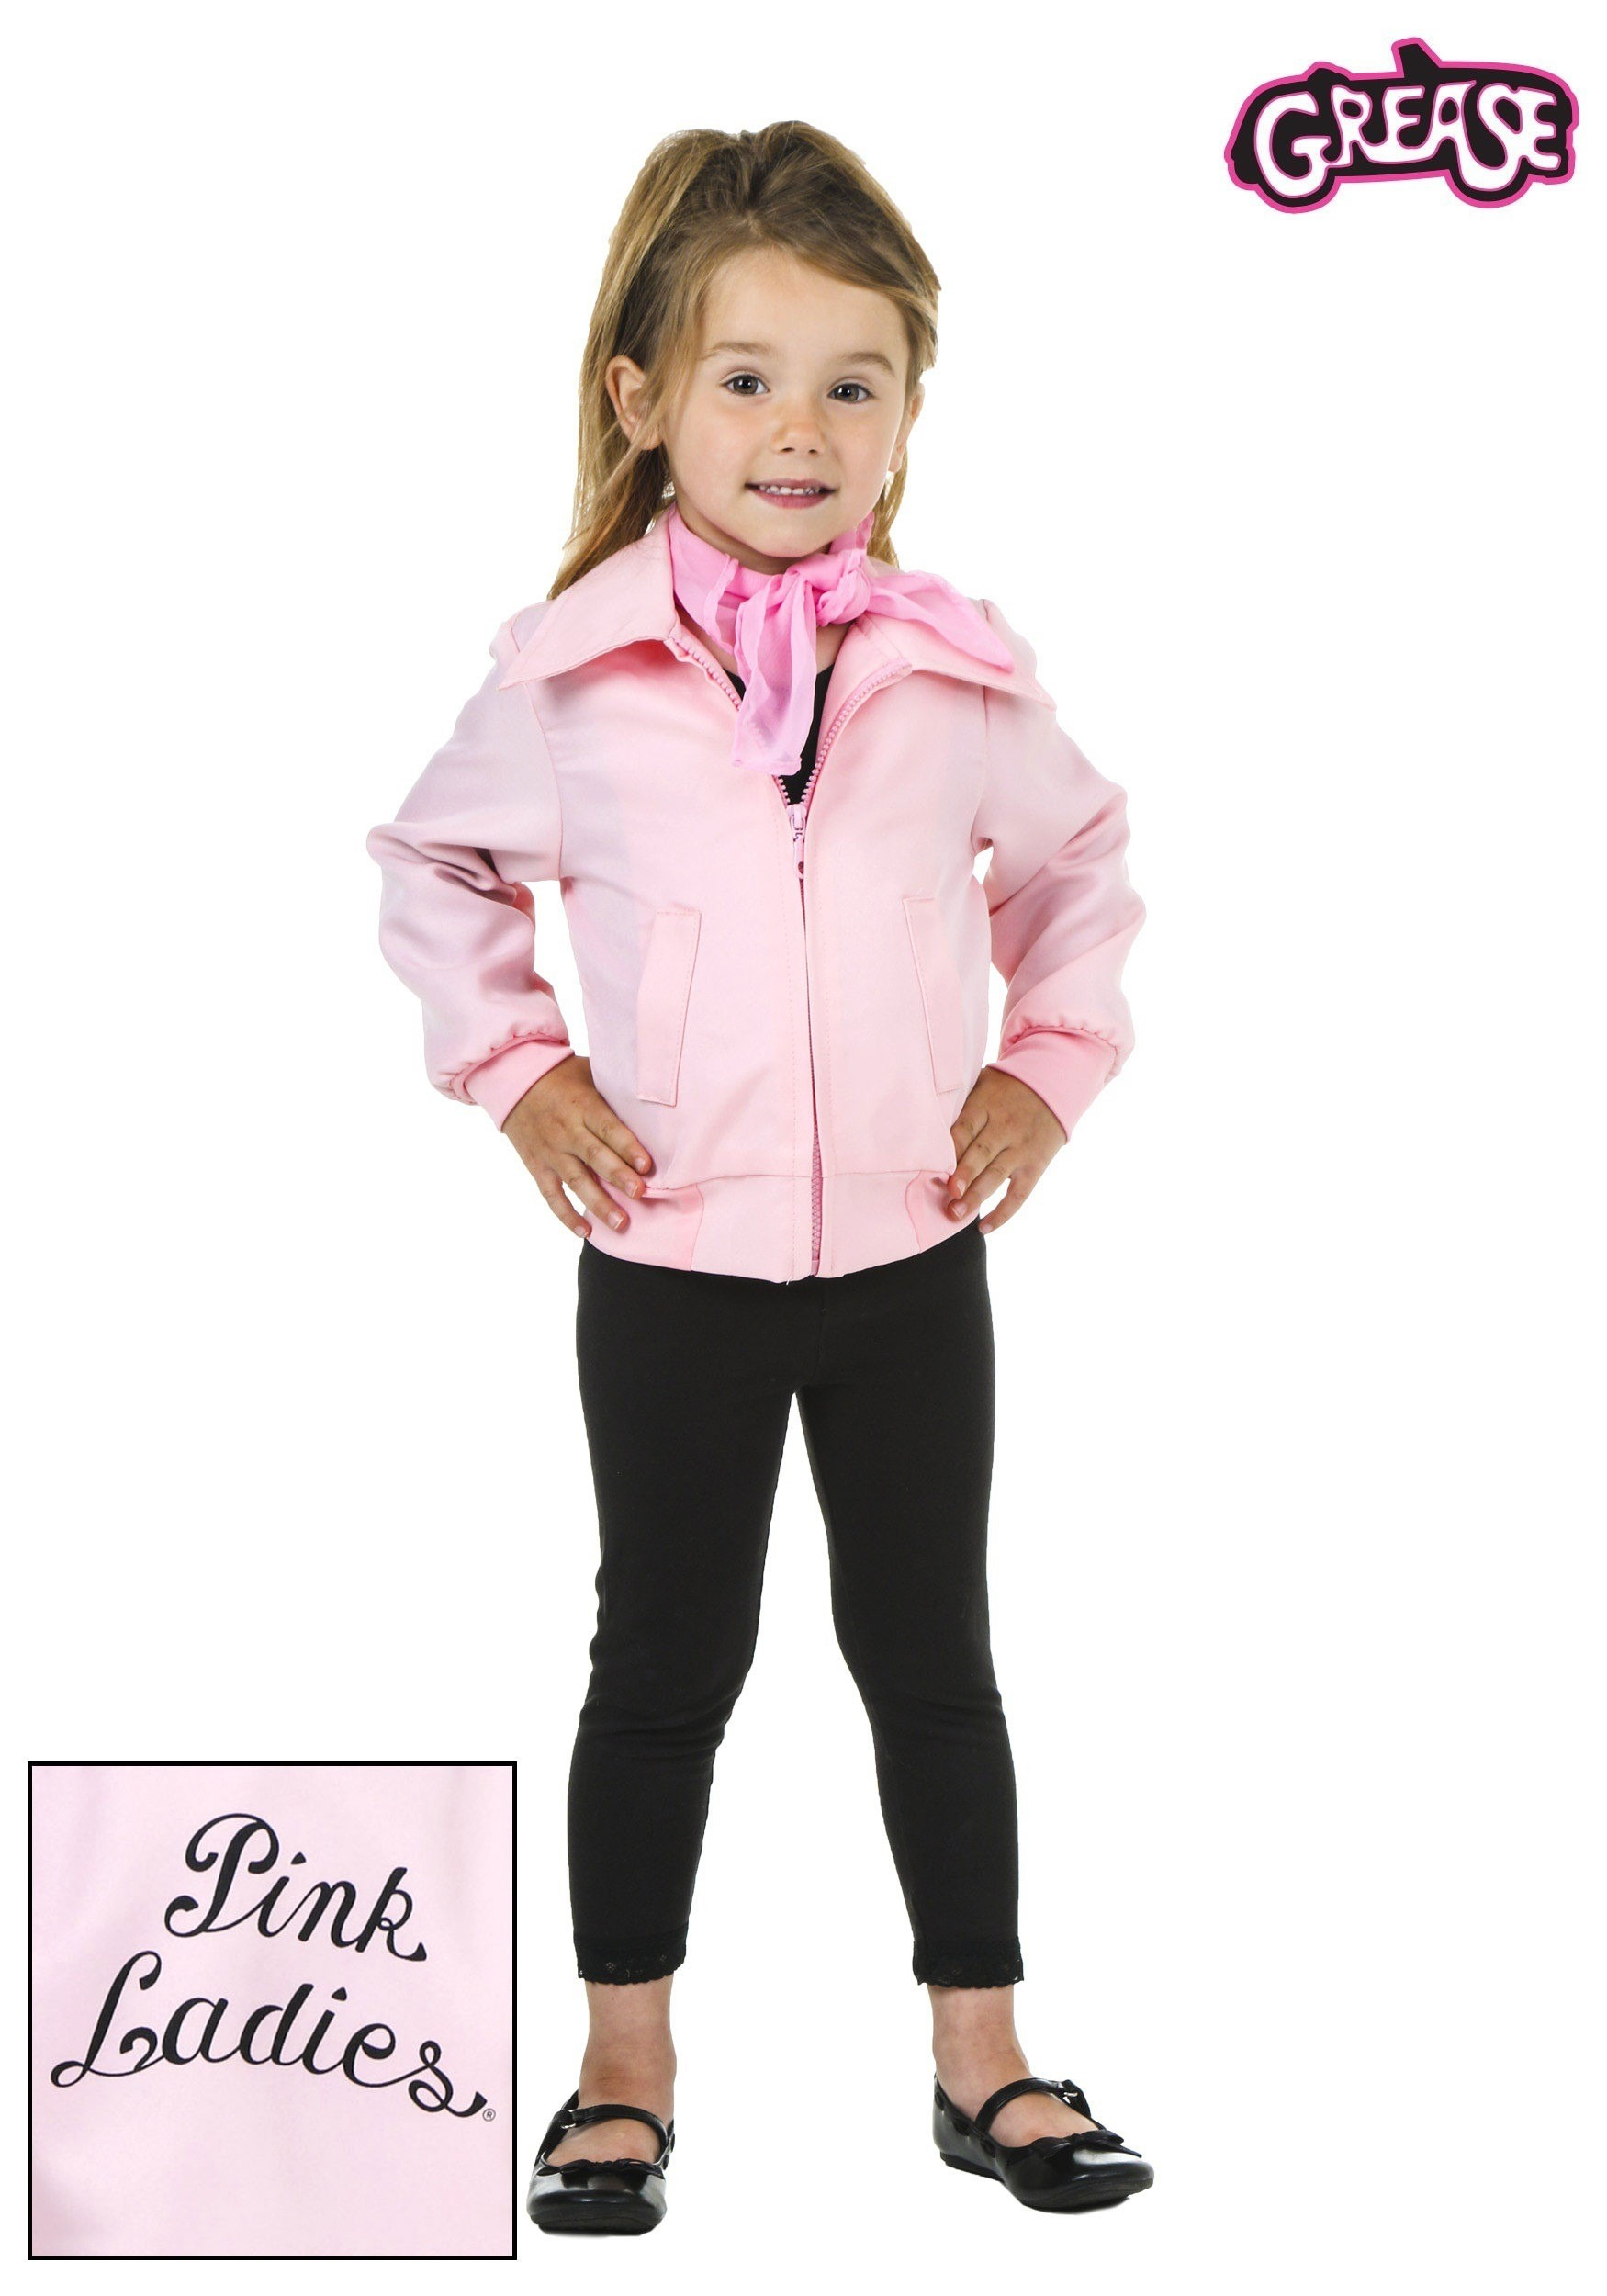 Deluxe Pink Ladies Jacket Costume For Toddlers